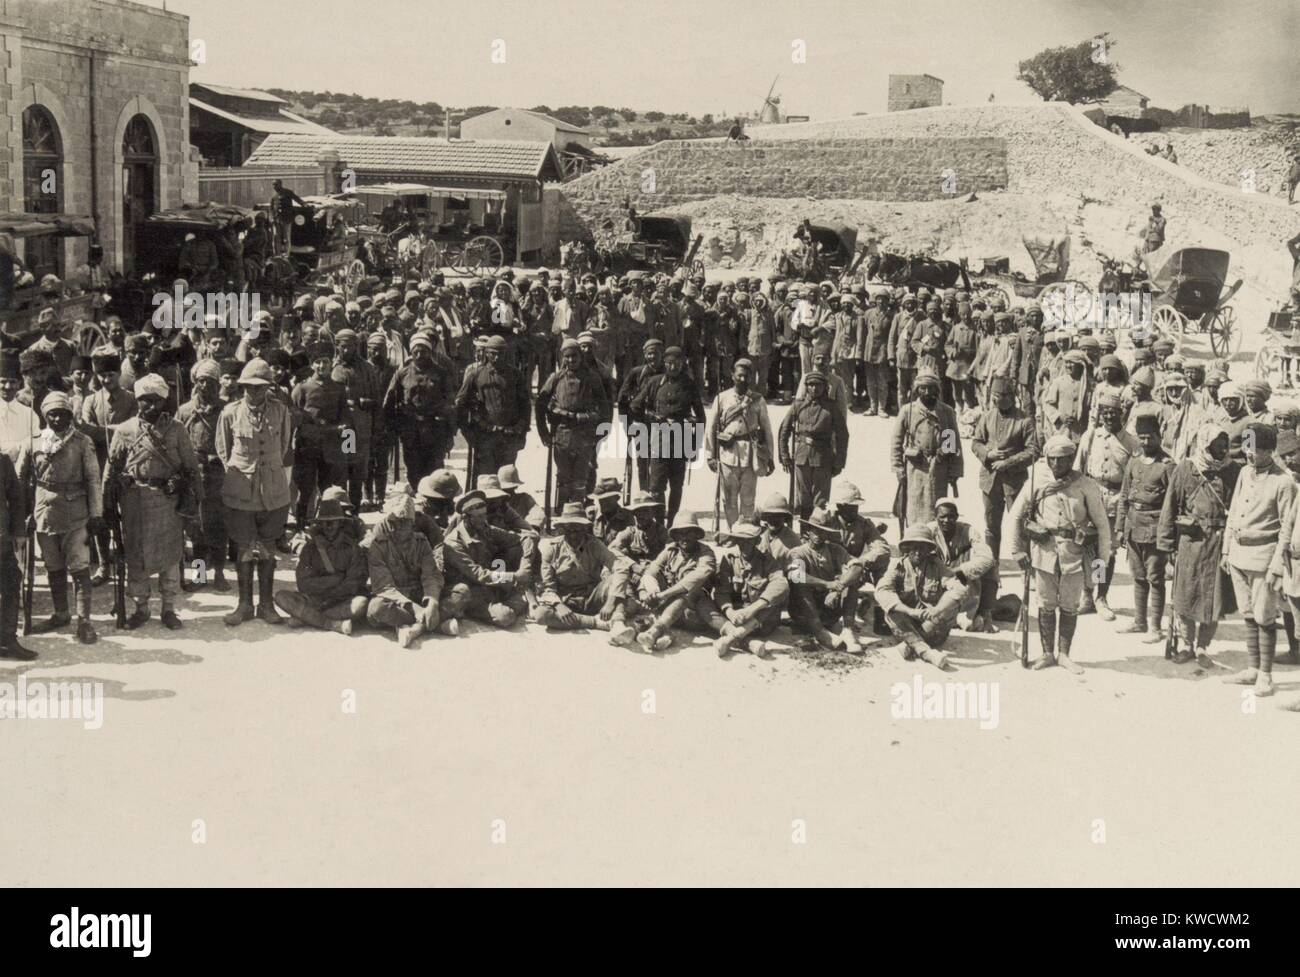 Seated Australian POWs captured at Shellal in the First Battle of Gaza, March 26, 1917. Soldiers of the Egyptian - Stock Image